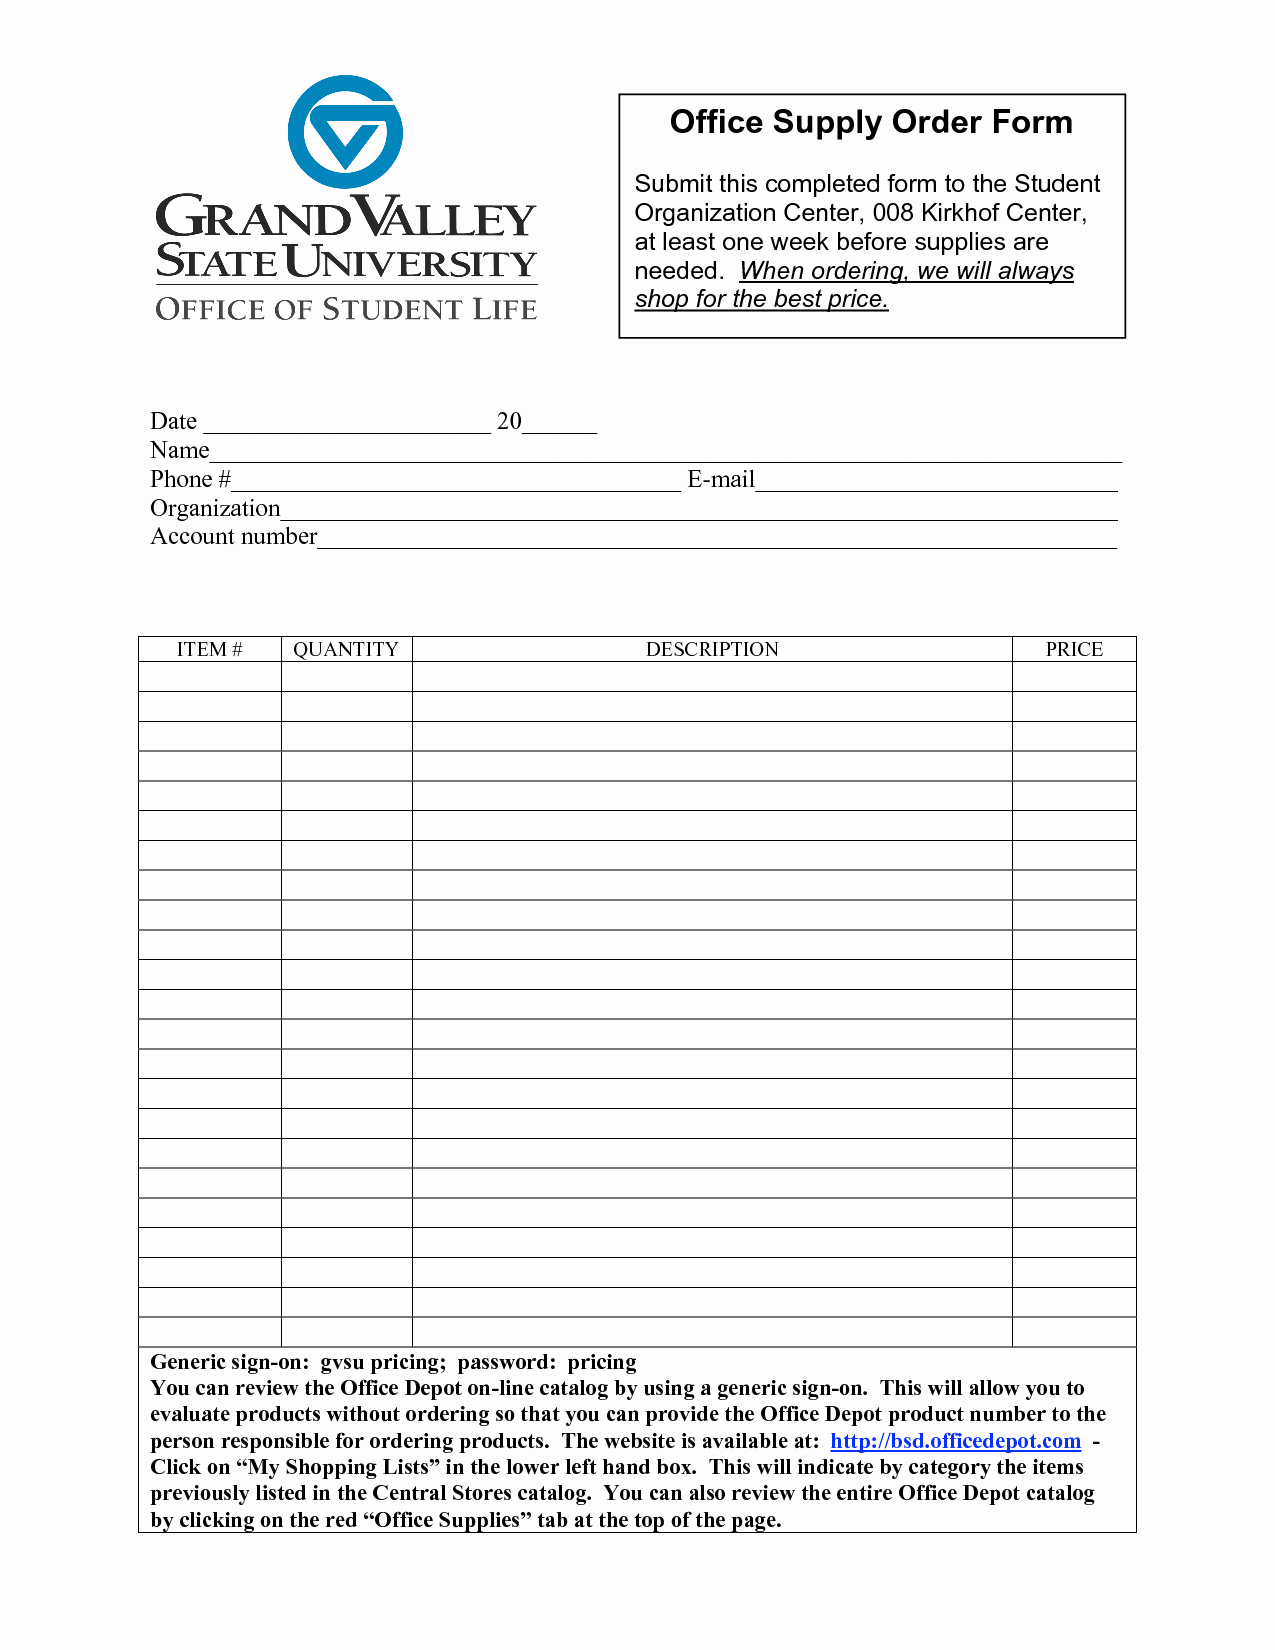 Office Supplies Request form Unique Best S Of Fice Depot forms Templates Fice